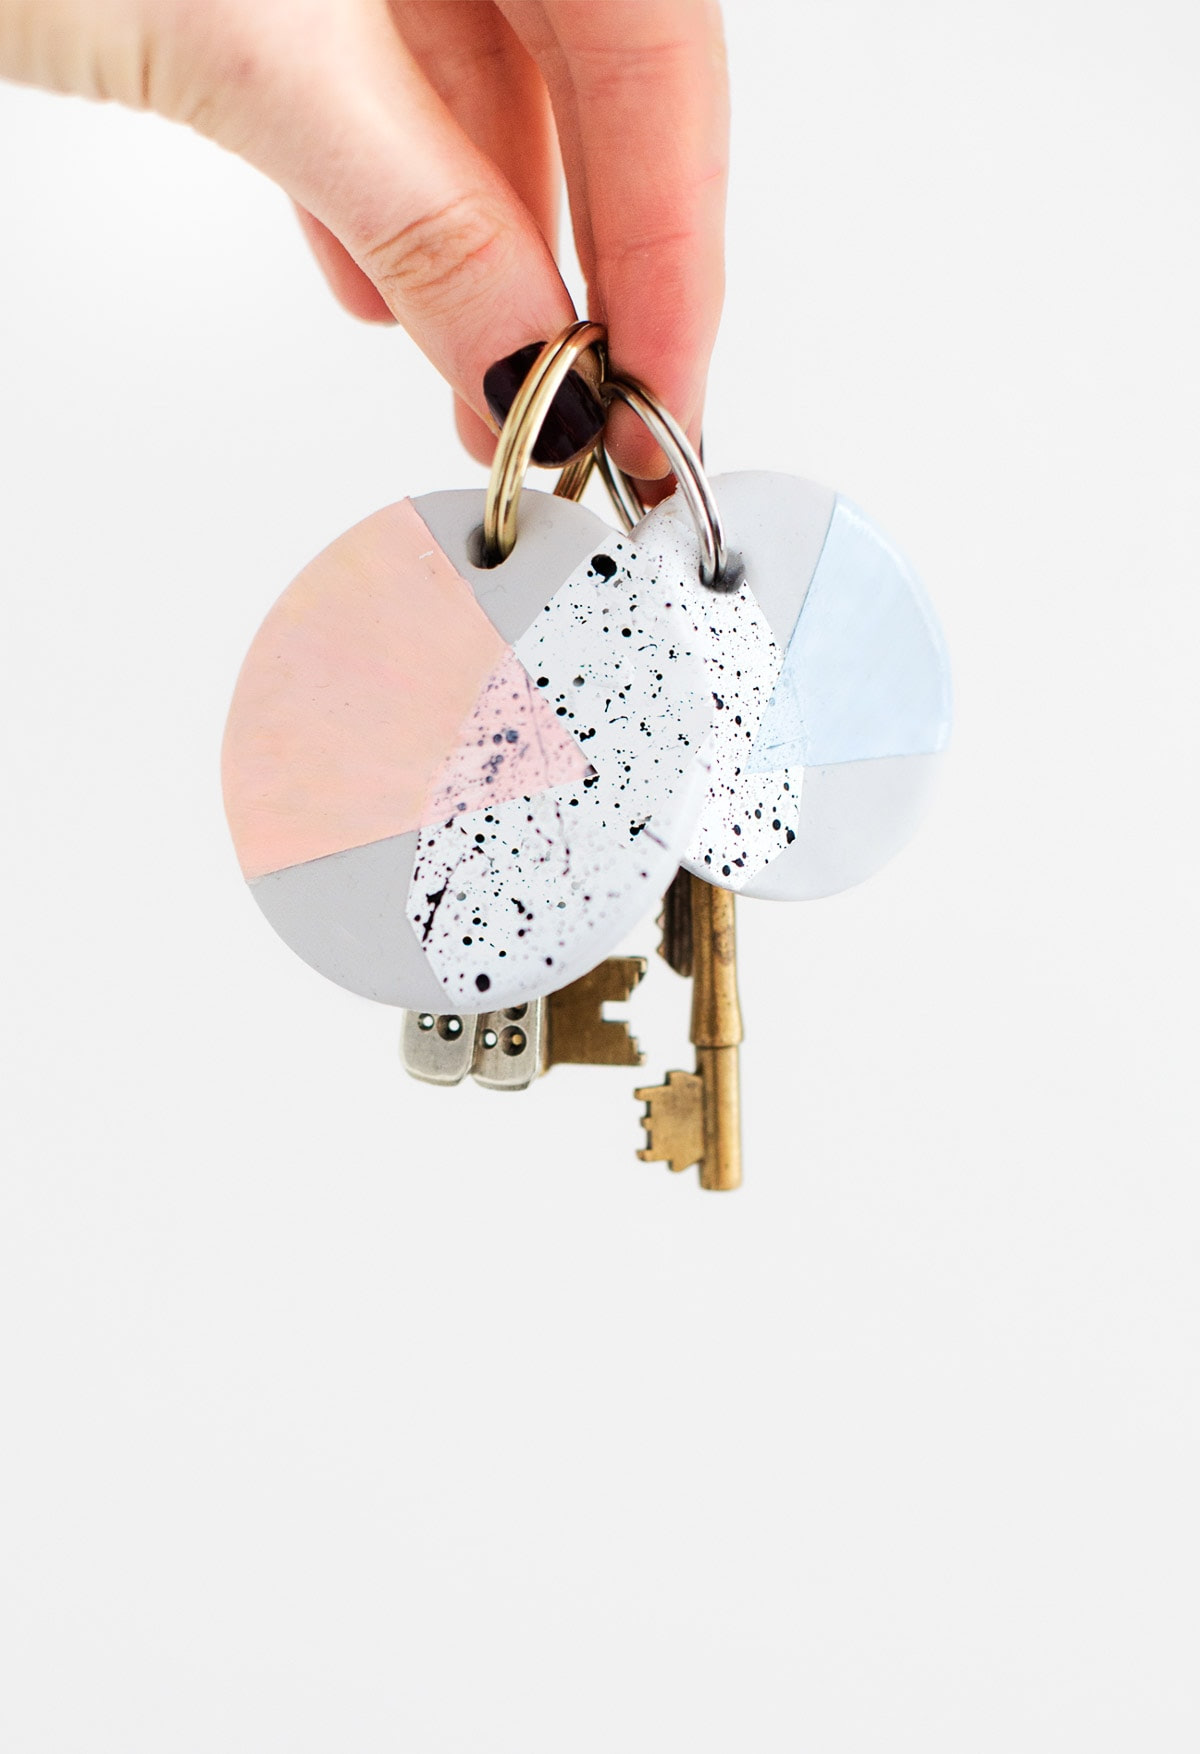 DIY Speckled Clay Keychain via Sugar and Cloth